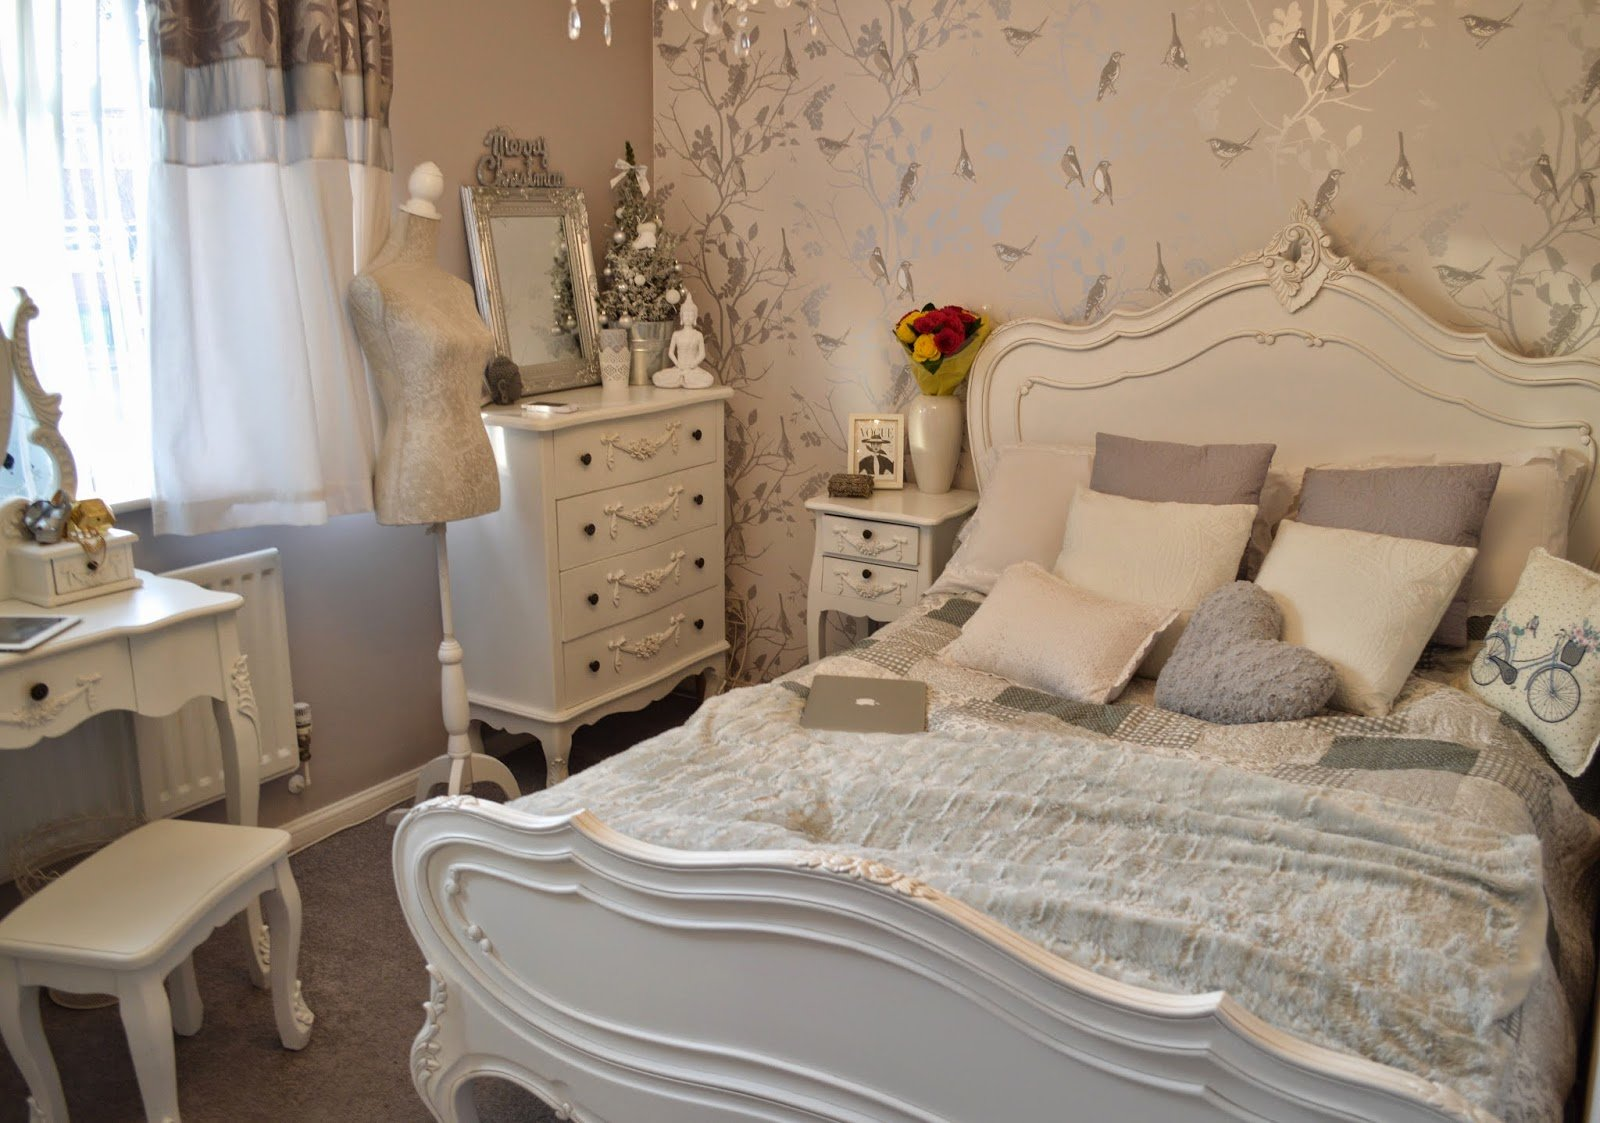 Best Lifestyle Bedroom Tour Christmas Edition Your Daily With Pictures